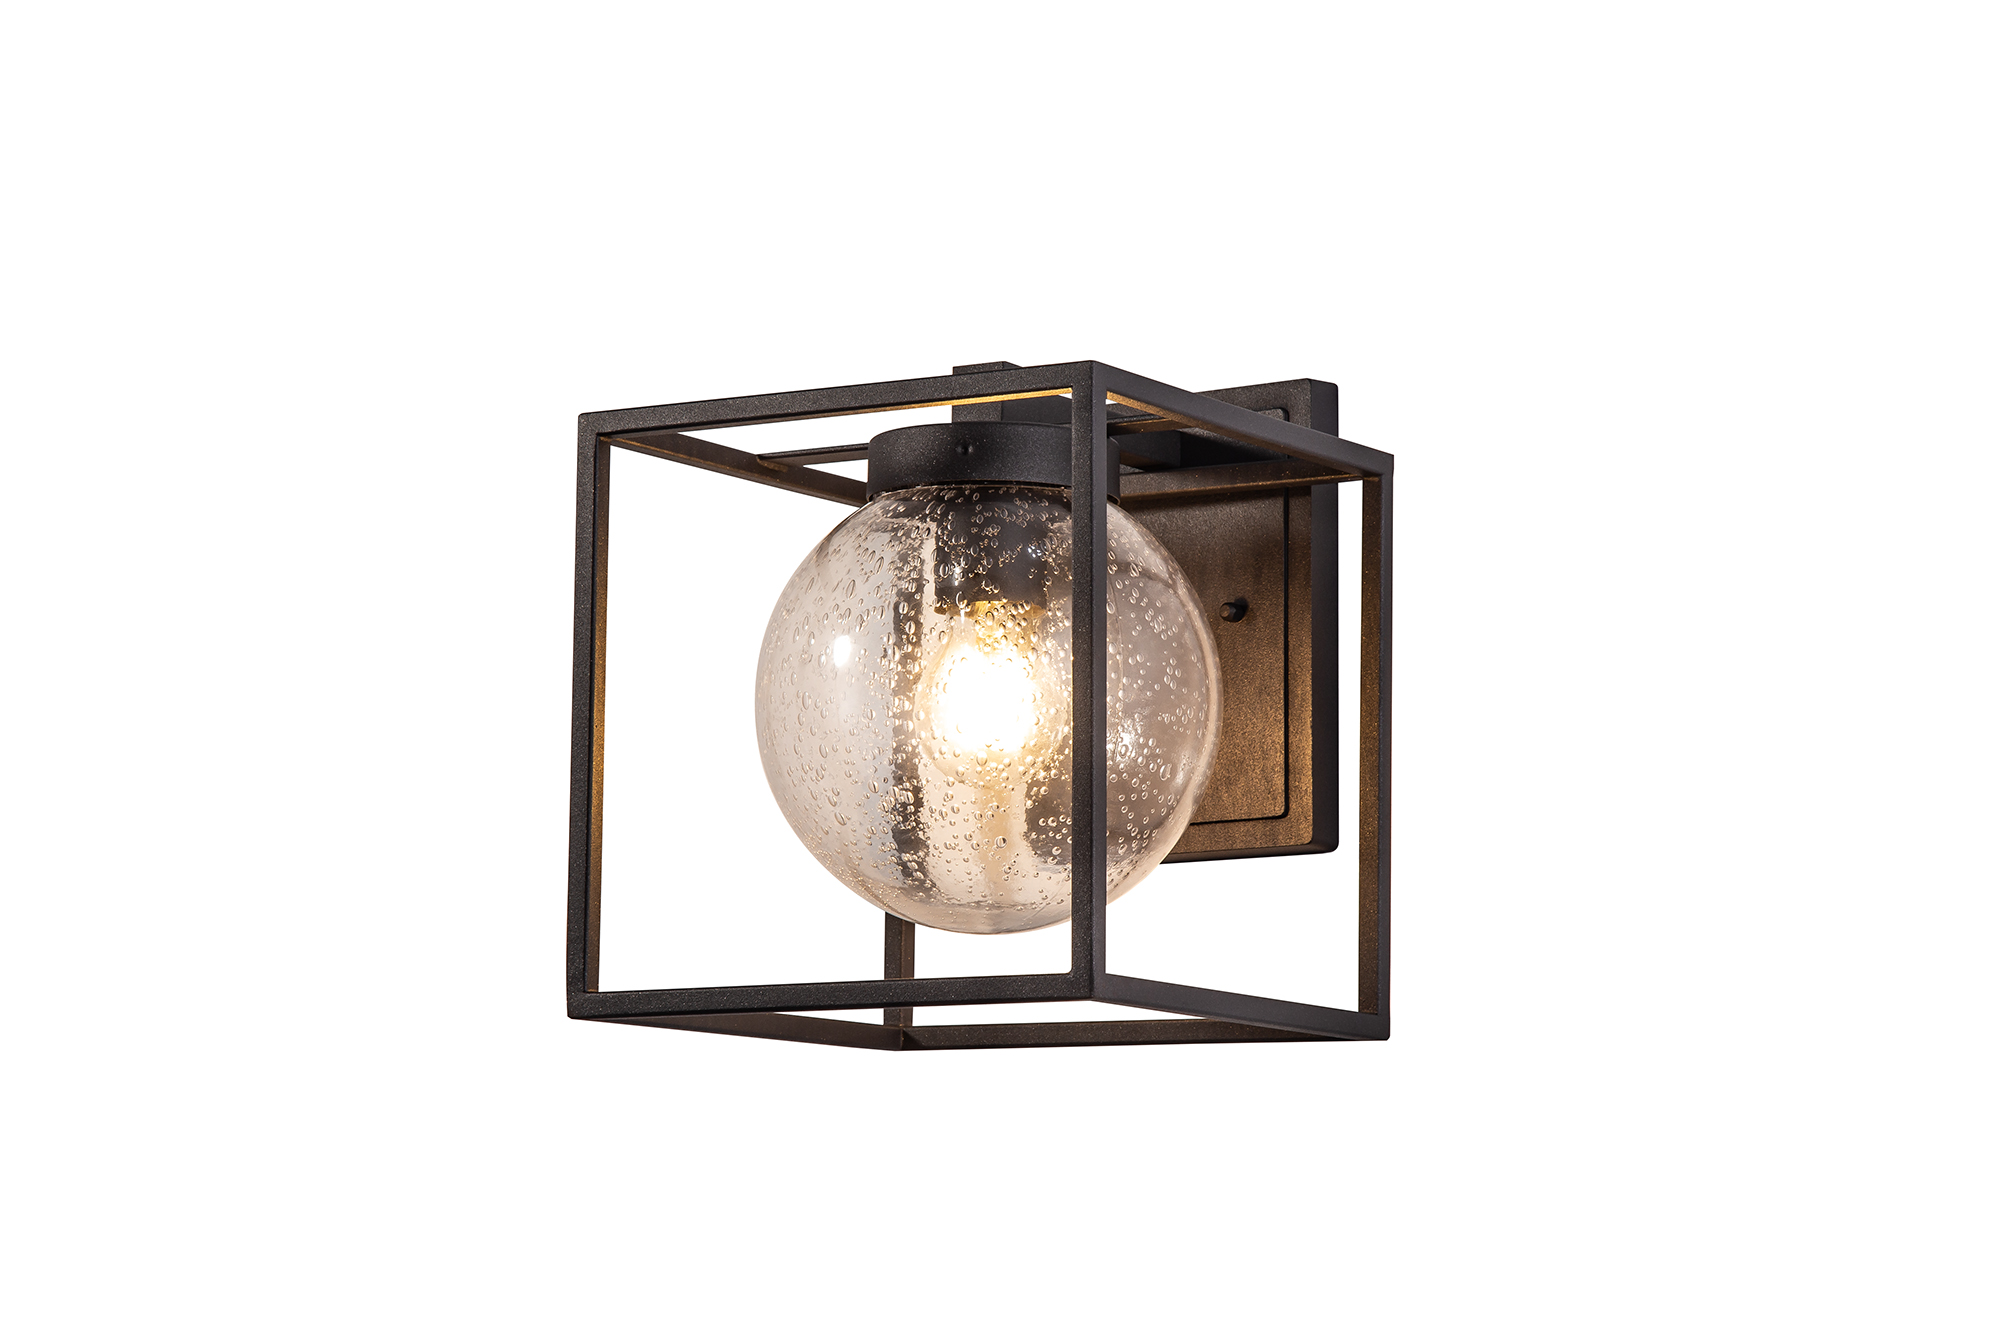 Down Wall Lamp, 1 x E27, IP54, Anthracite/Clear Seeded Glass, 2yrs Warranty